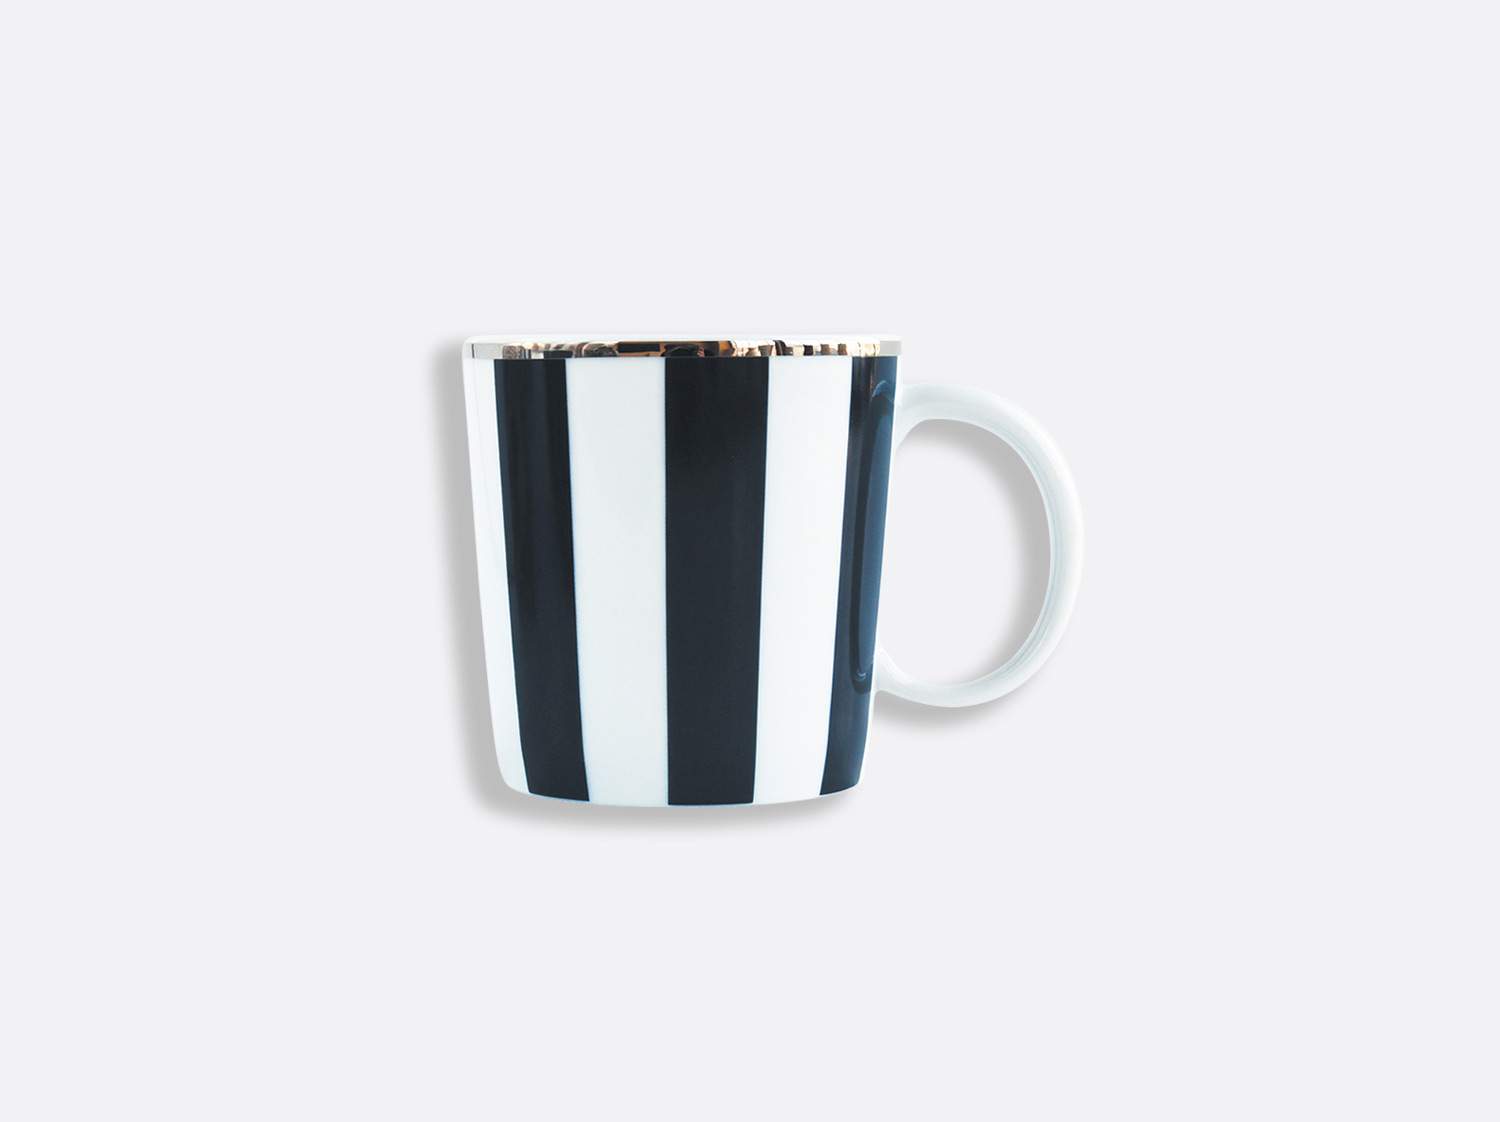 Mug 20 cl en porcelaine de la collection Galerie Royale Bleu Nuit Bernardaud